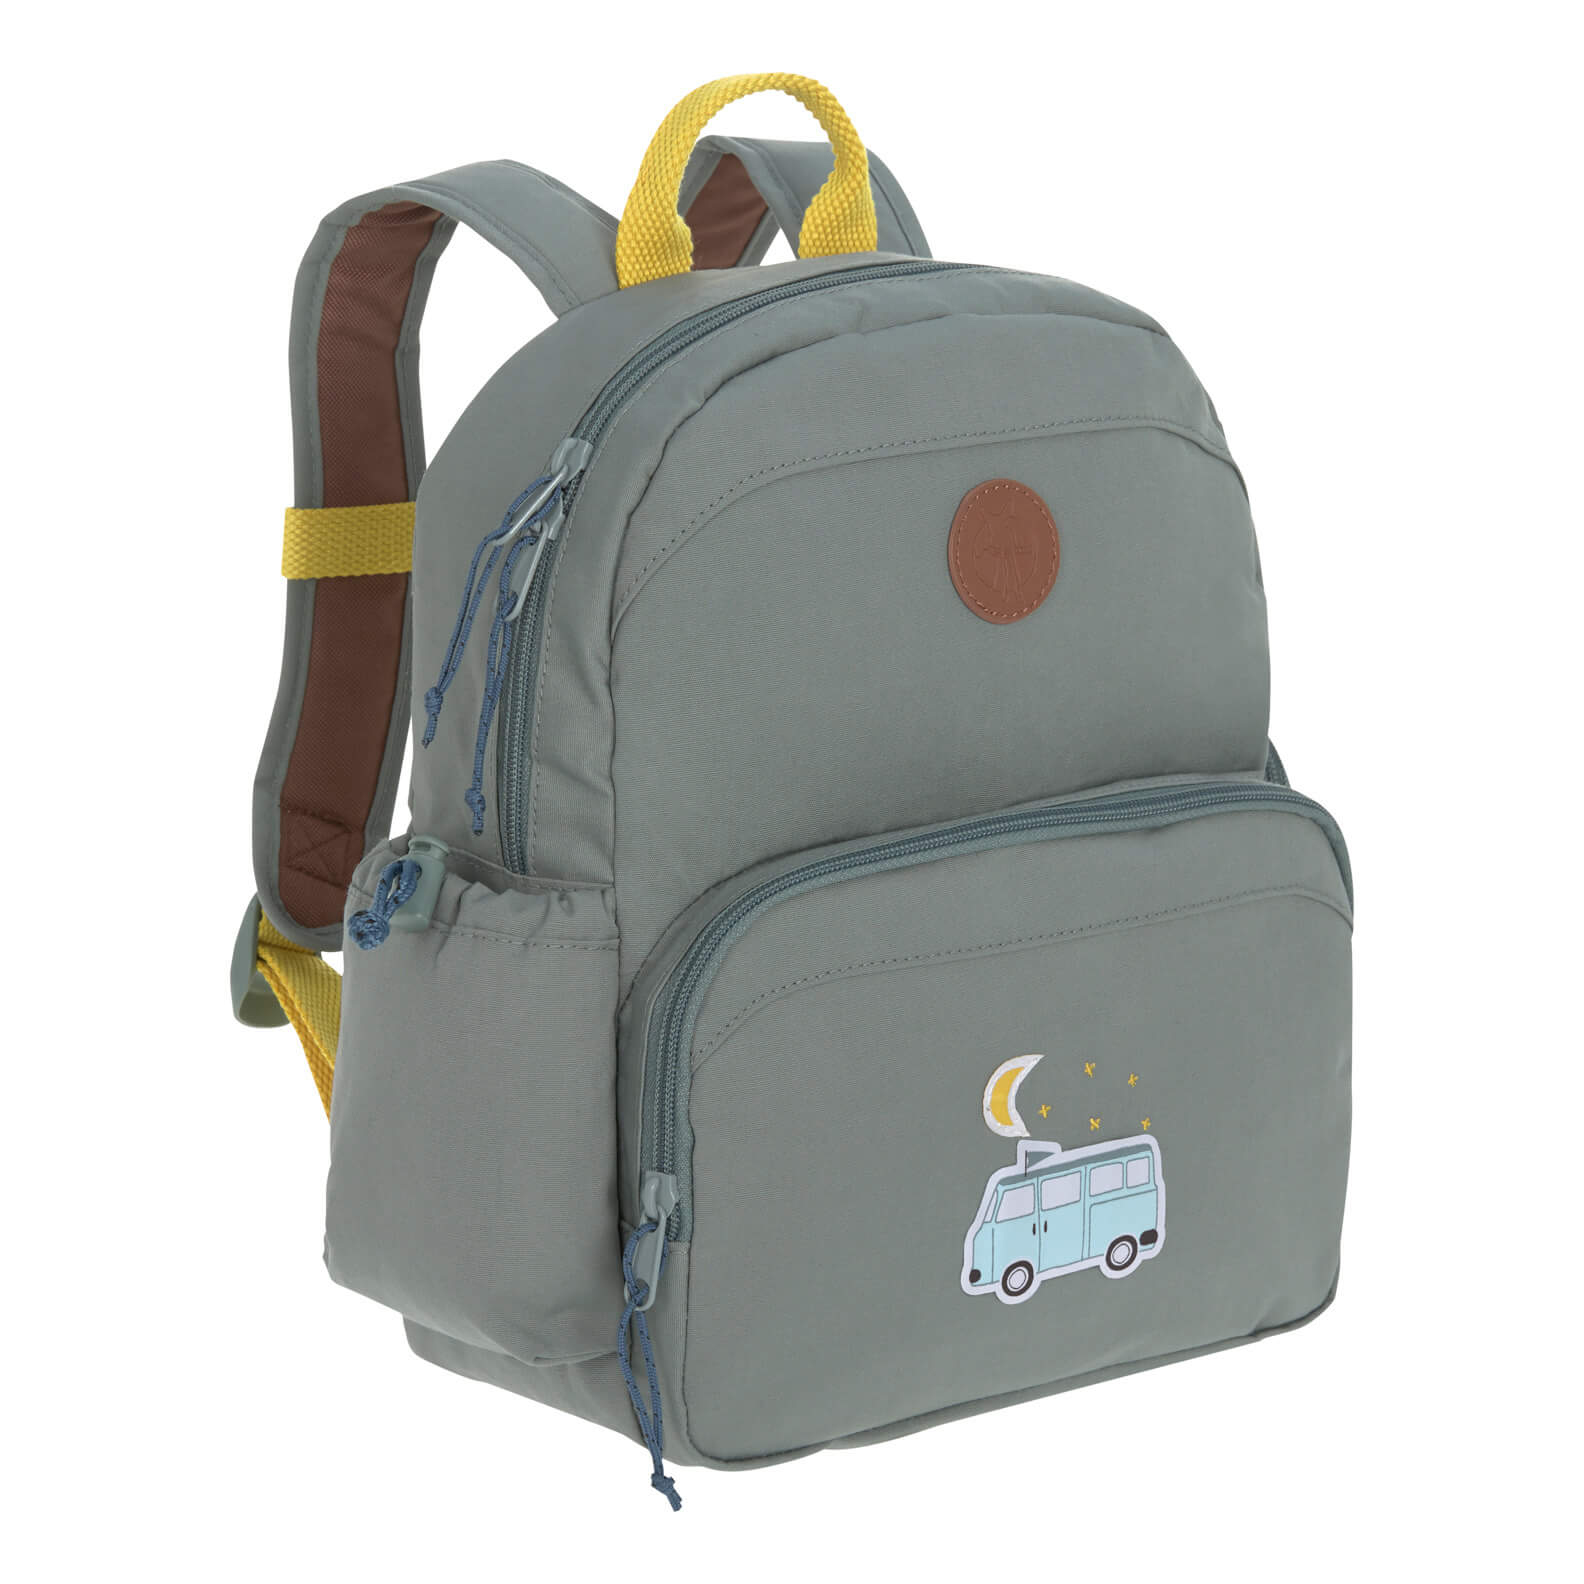 Kinderrucksack - Medium Backpack - Adventure Bus - Lässig